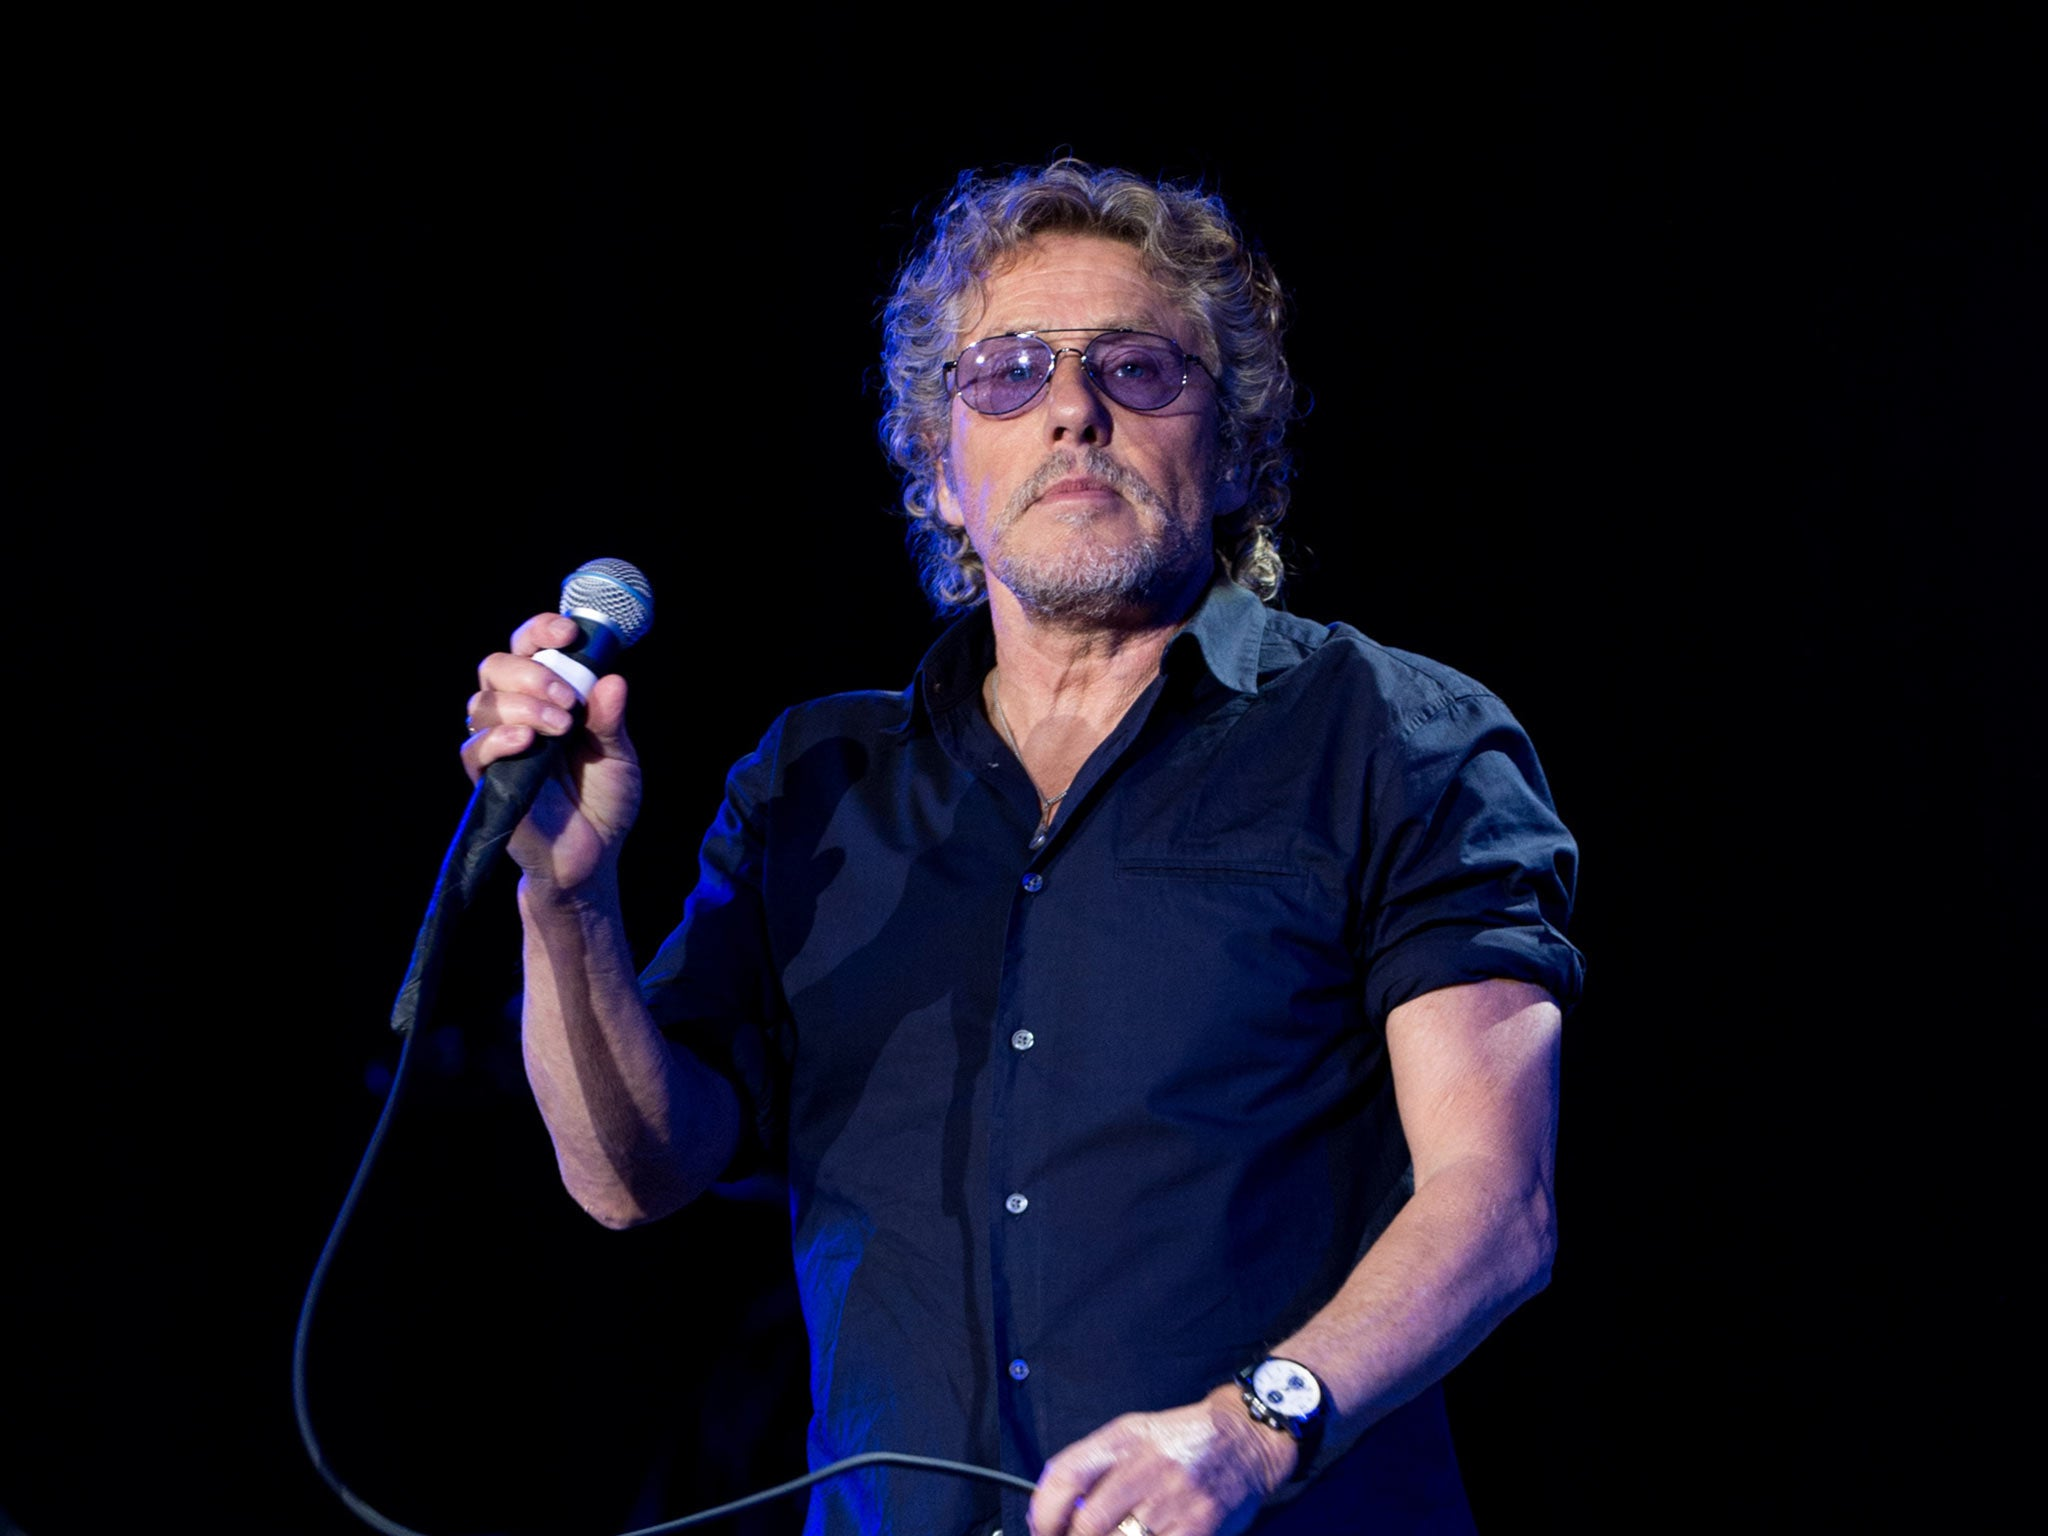 Roger Daltrey snaps at journalist over question on Brexit and the music industry: 'As if we didn't tour Europe before the f***ing EU'